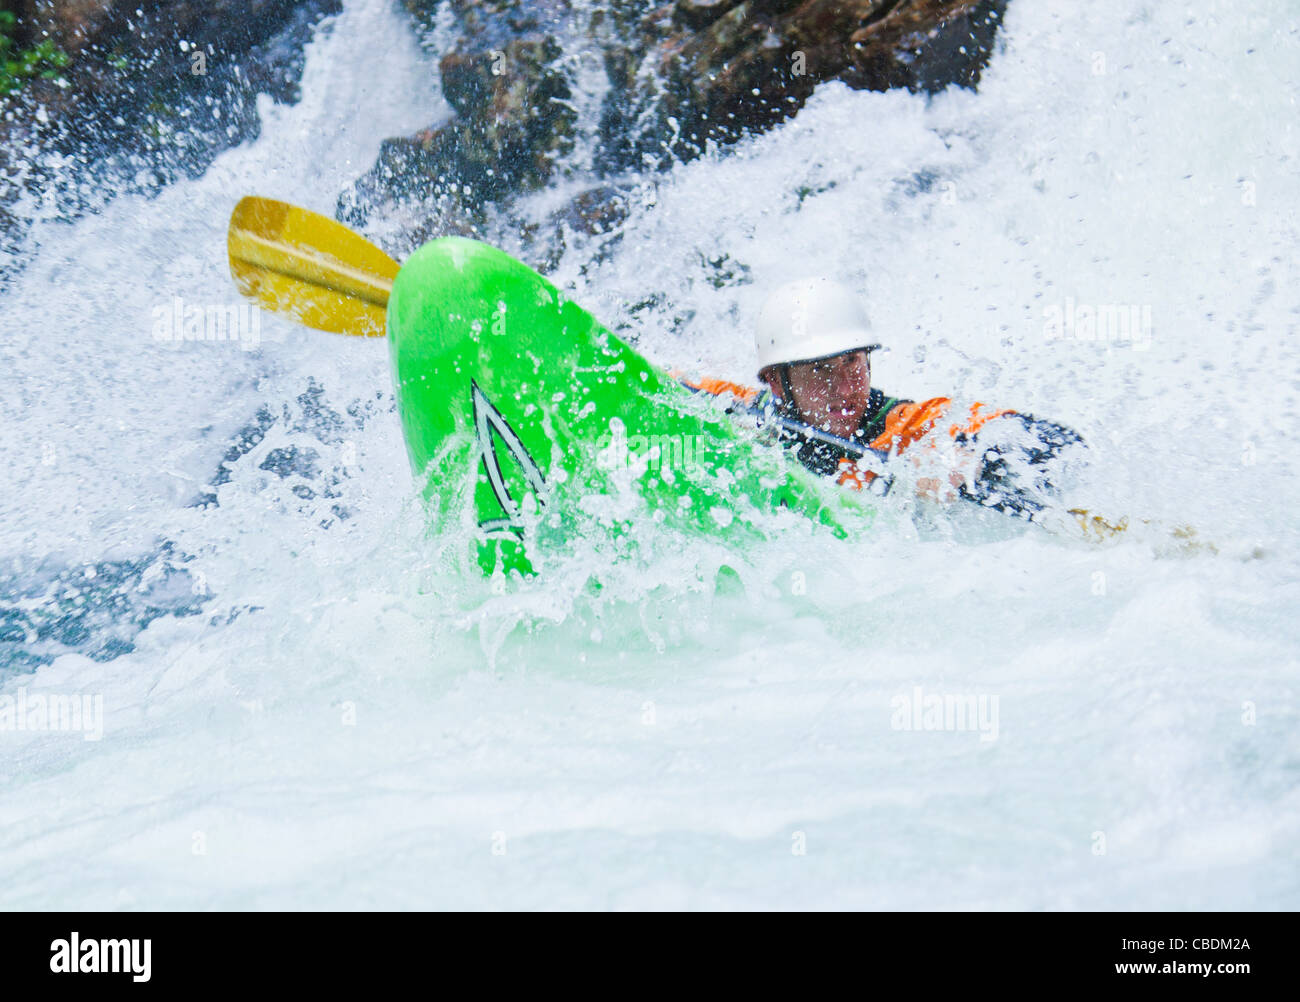 A man kayaking down a series of small waterfalls, Snoqualmie River (south fork), Washington, USA. Fall in the wall - Stock Image